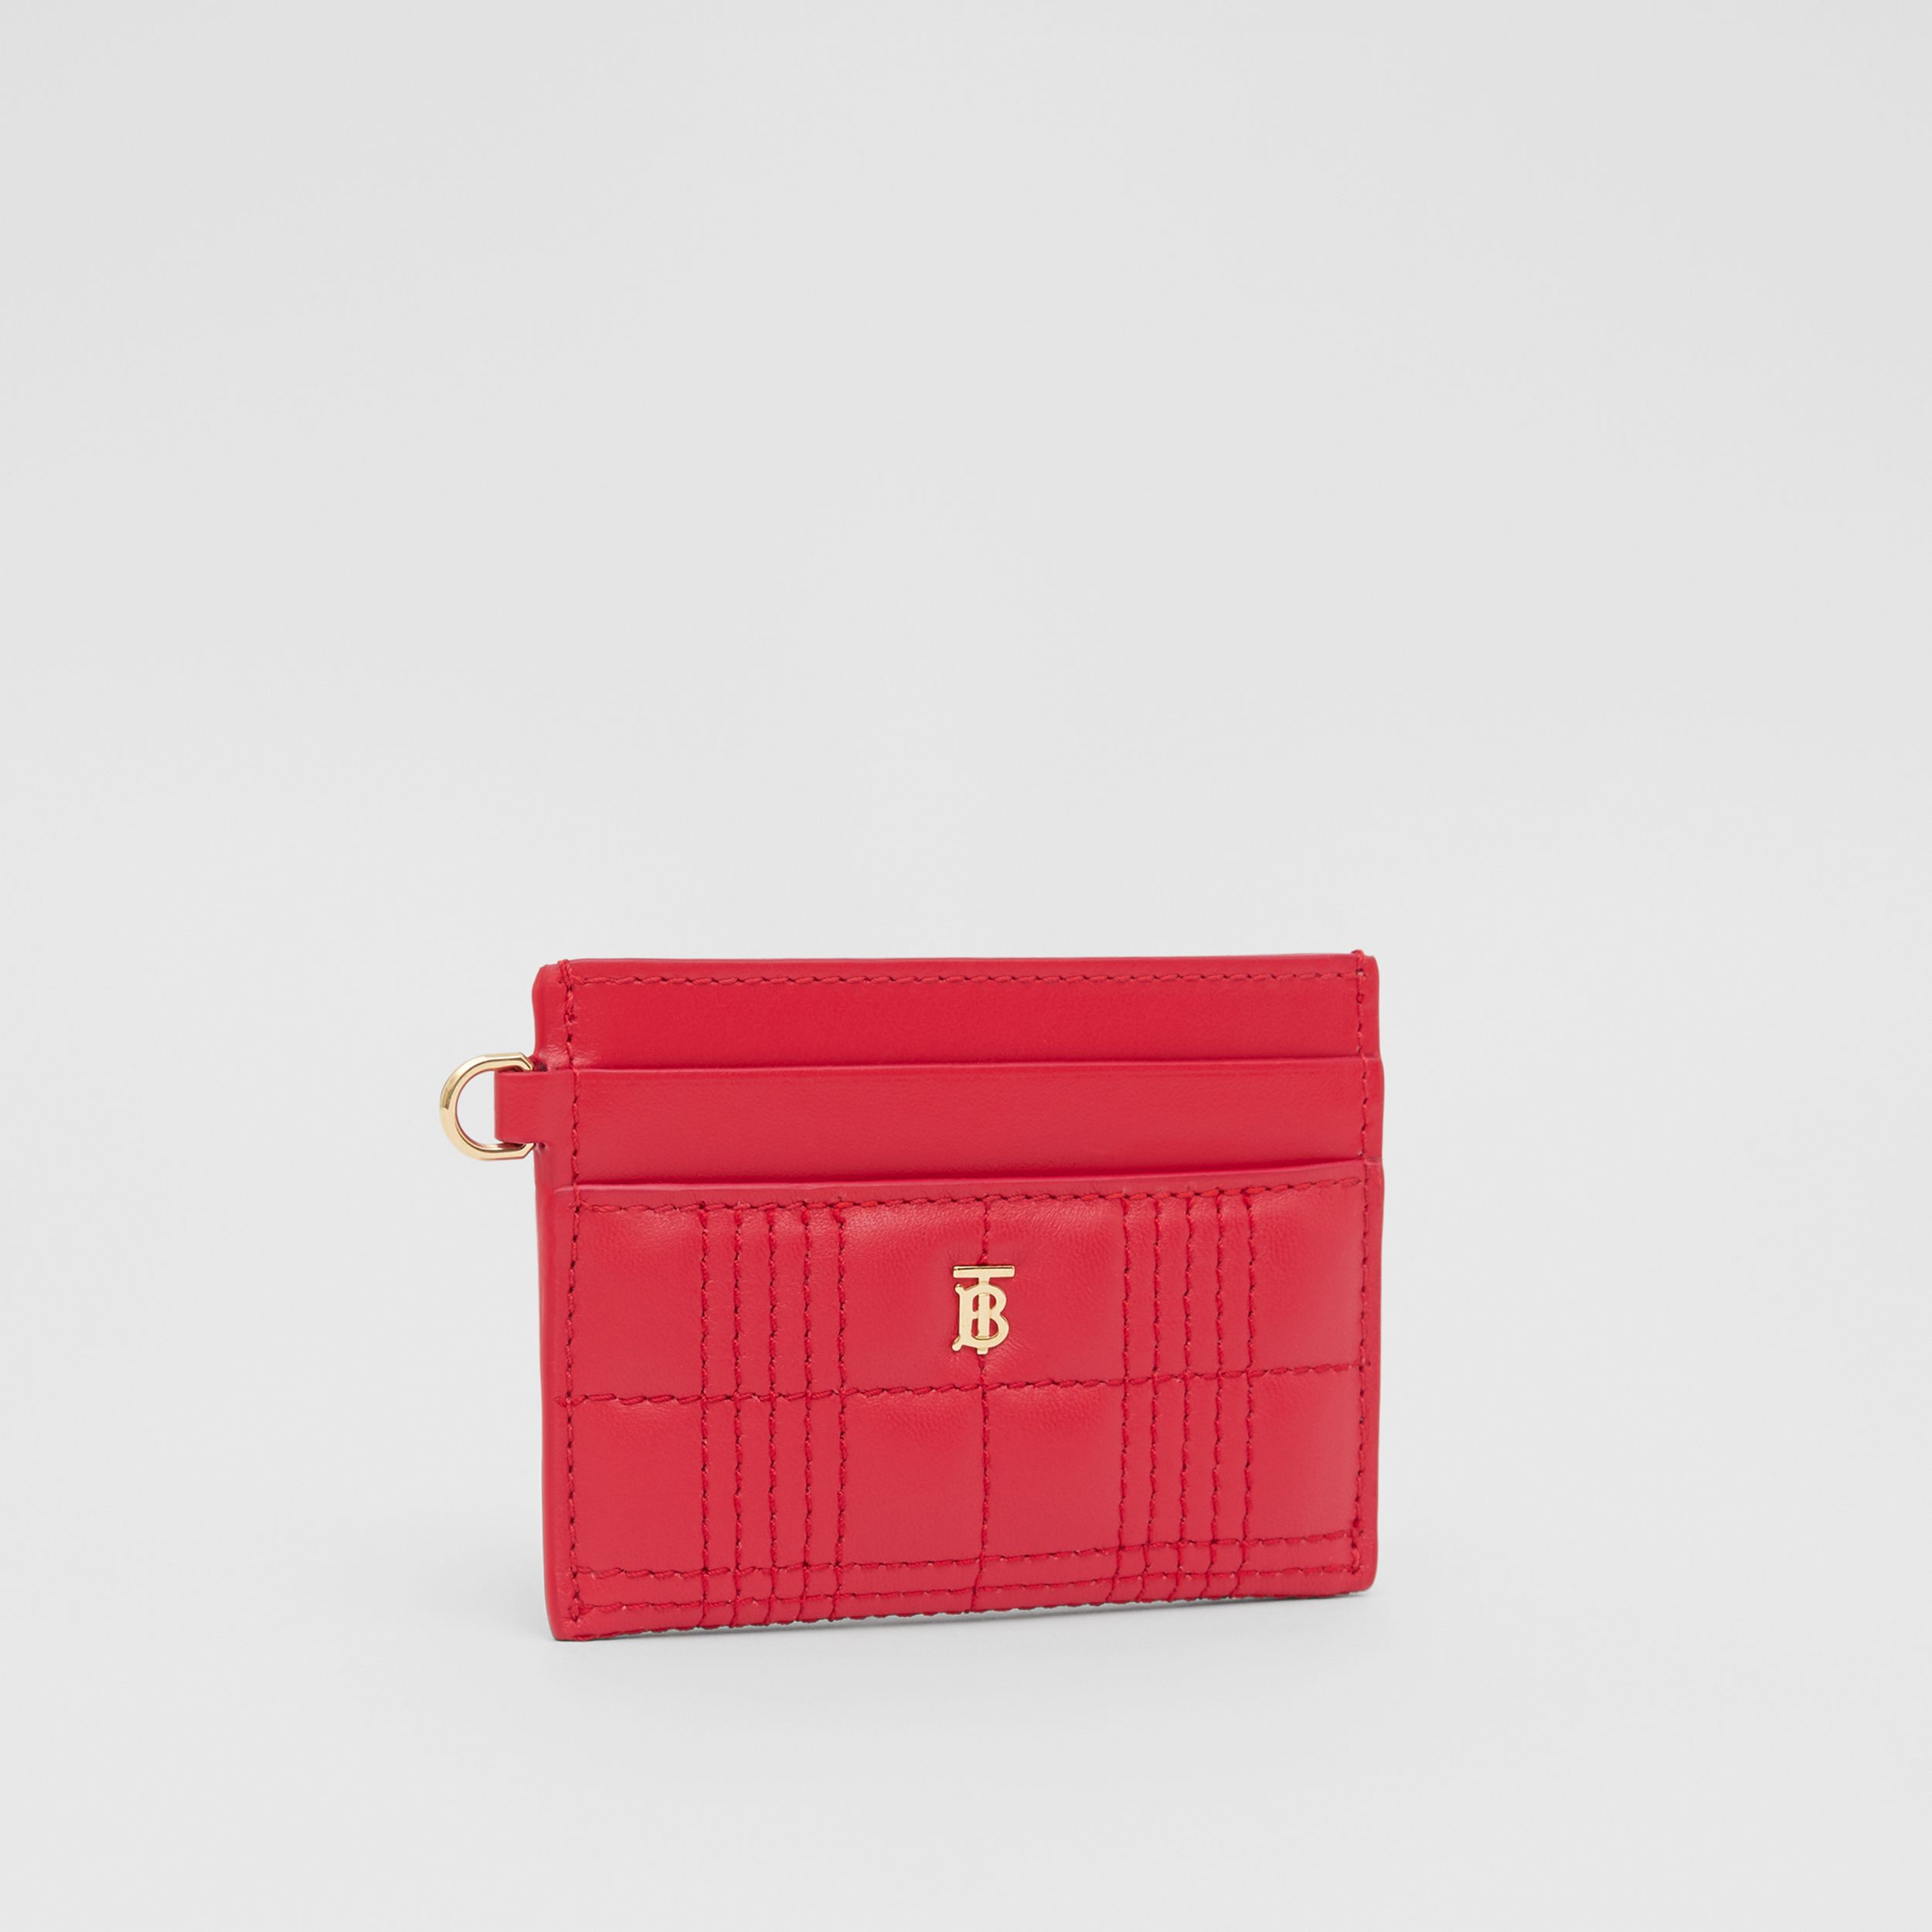 Monogram Motif Quilted Lambskin Card Case in Bright Red - Women | Burberry Hong Kong S.A.R. - 4